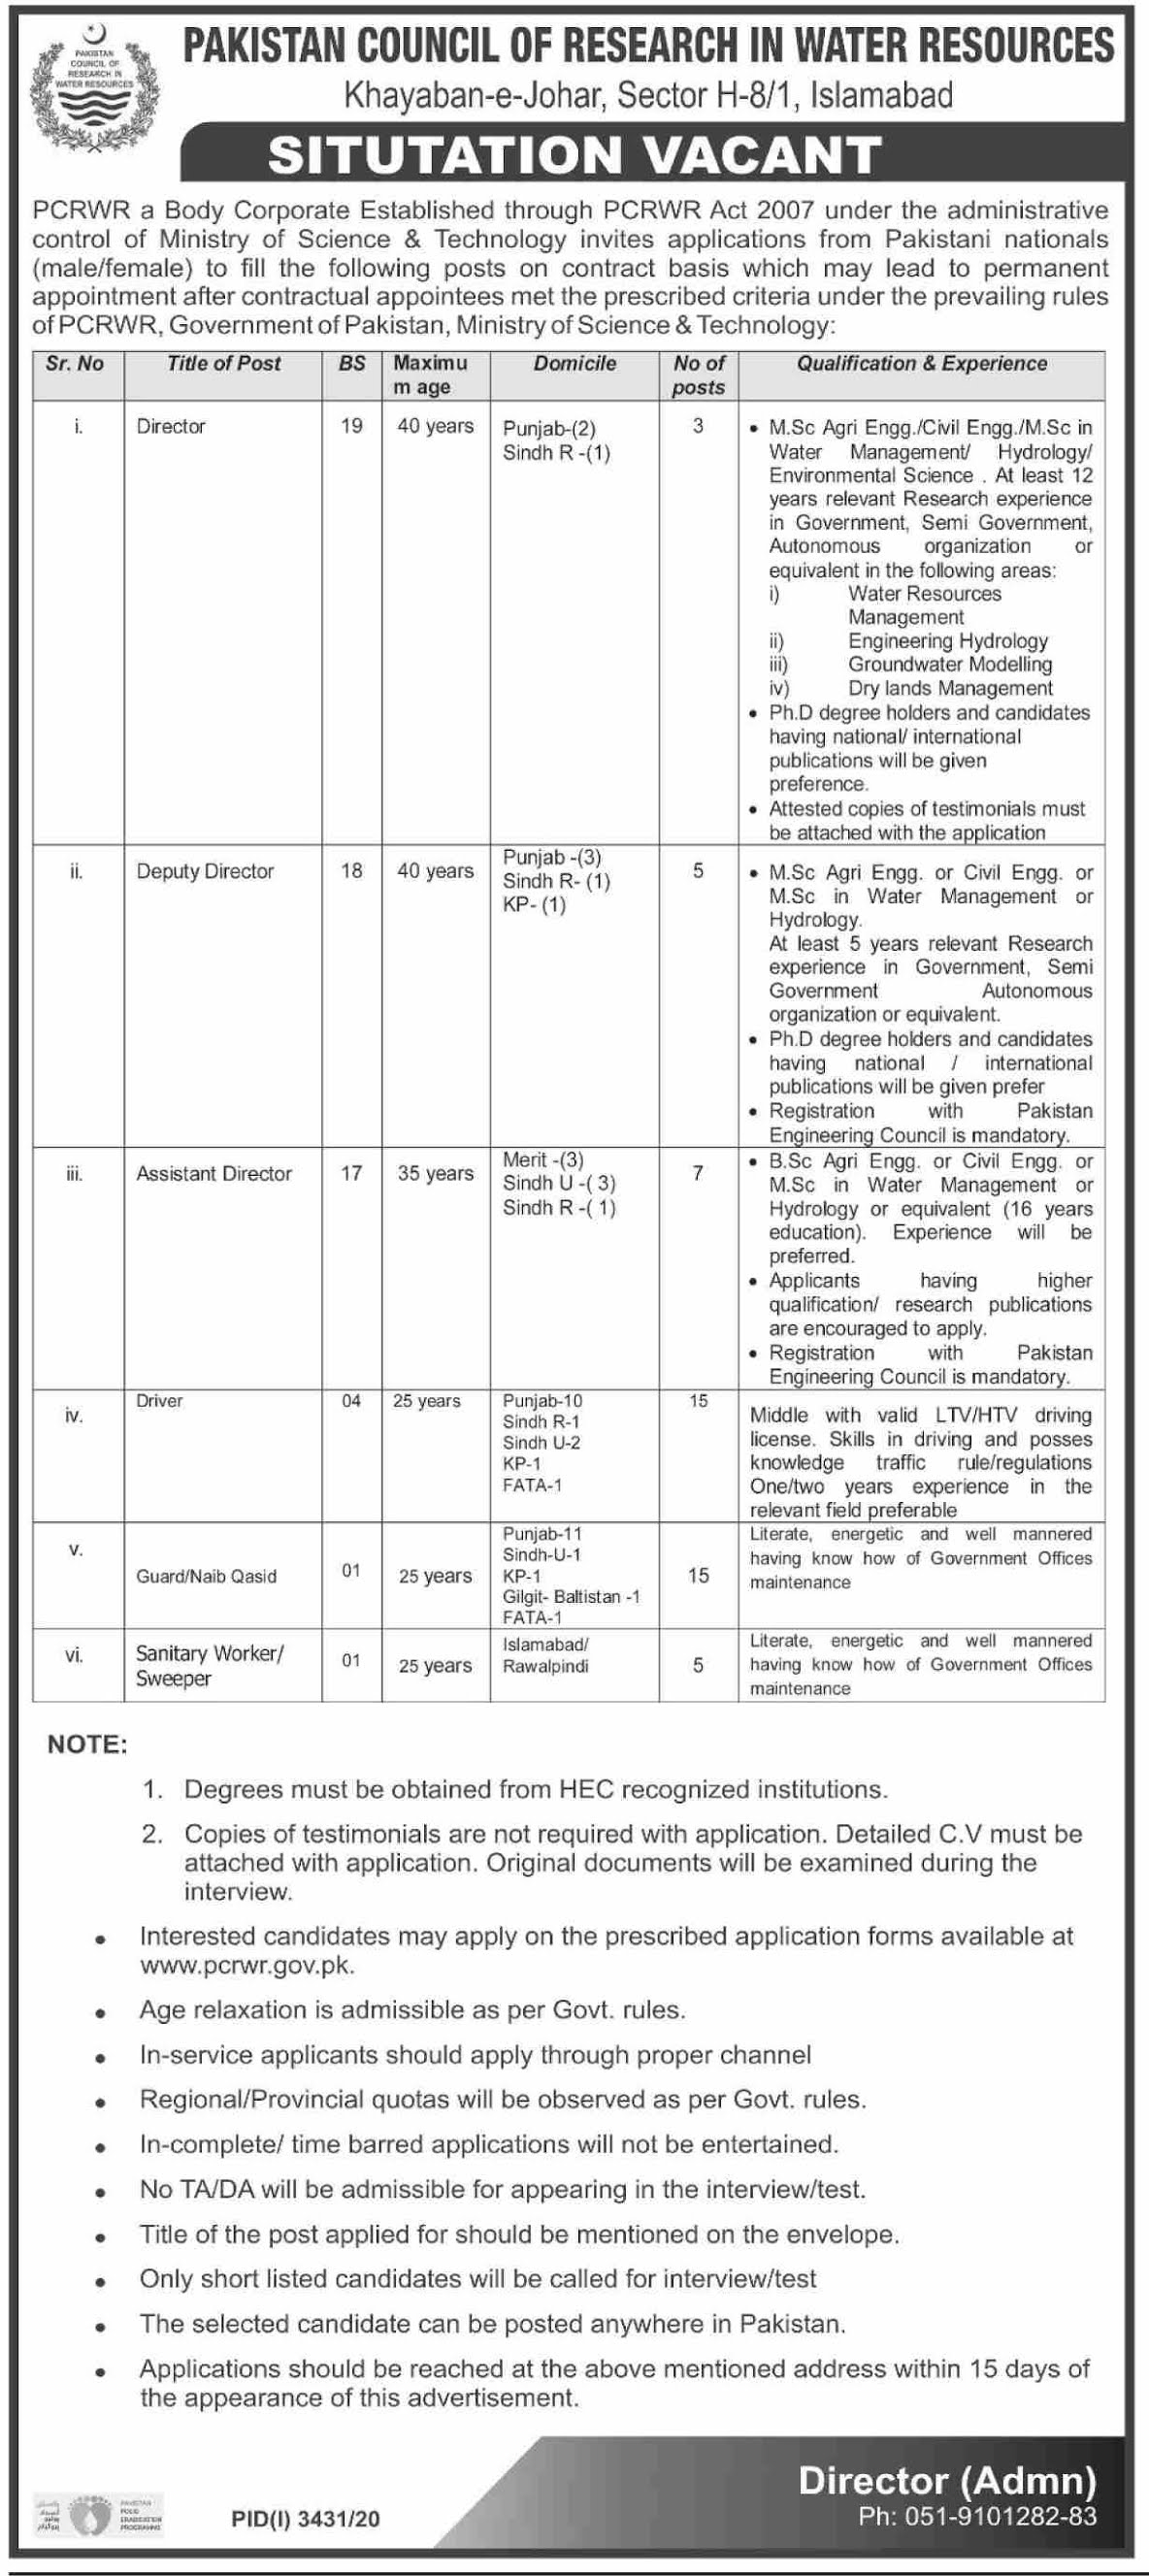 PCRWR Jobs 2021 - Pakistan Council of Research in Water Resources Jobs 2021 - Download Application Form - www.pcrwr.gov.pk